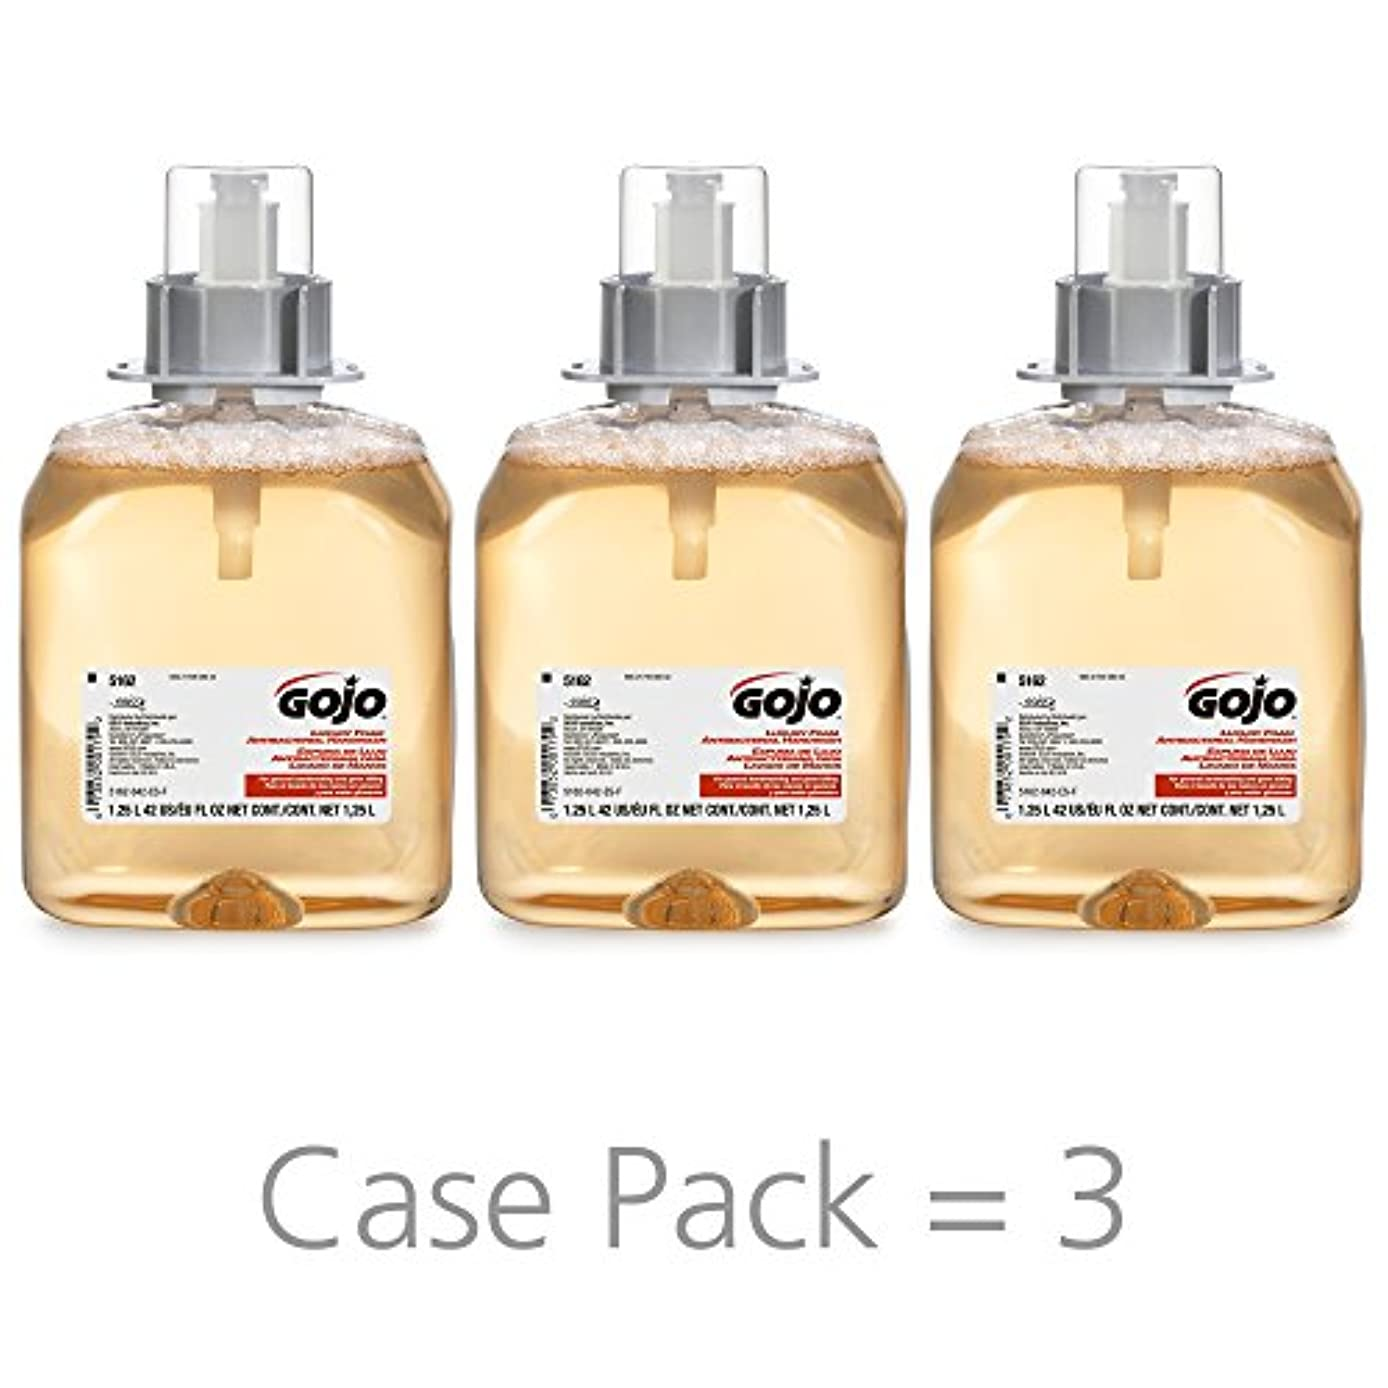 インペリアルペレットオデュッセウスGOJO 516203CT FMX-12 Foam Hand Wash, Fresh Fruit, FMX-12 Dispenser, 1250mL Pump, 3/Carton by Gojo